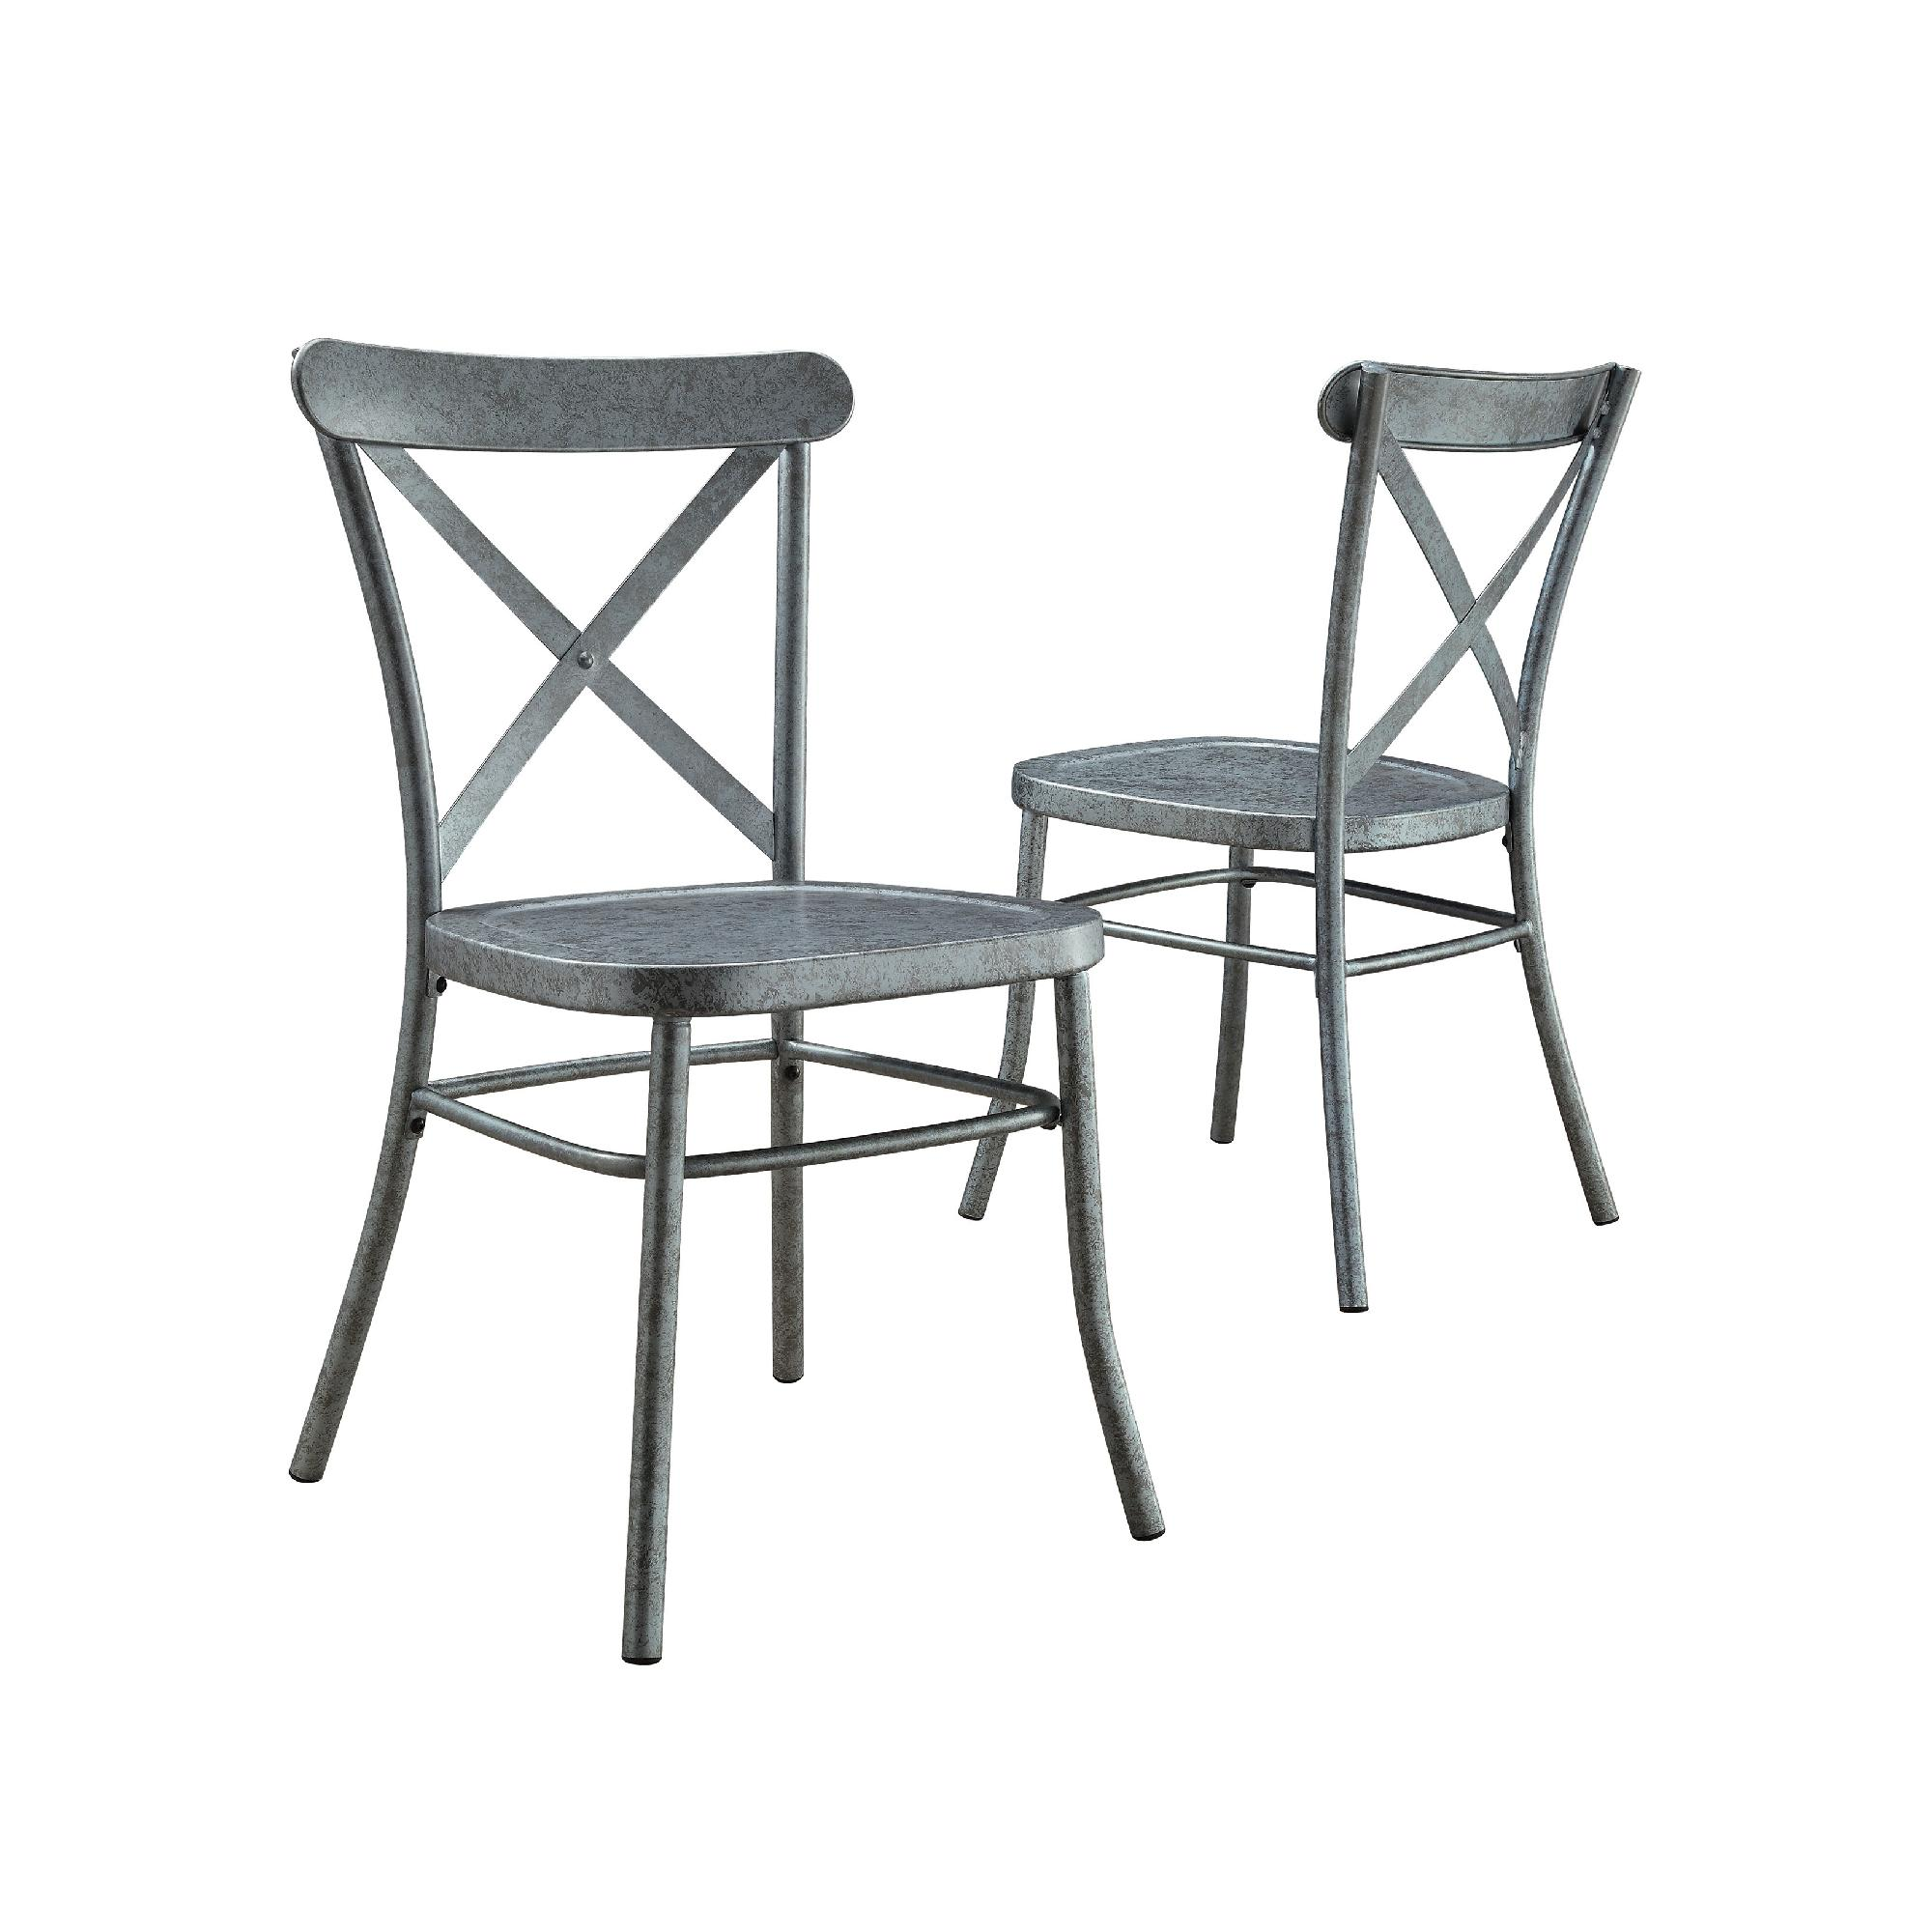 Better Homes And Gardens Collin Distressed Dining Chair Set Of 2 Multiple Finishes Walmart Com Walmart Com